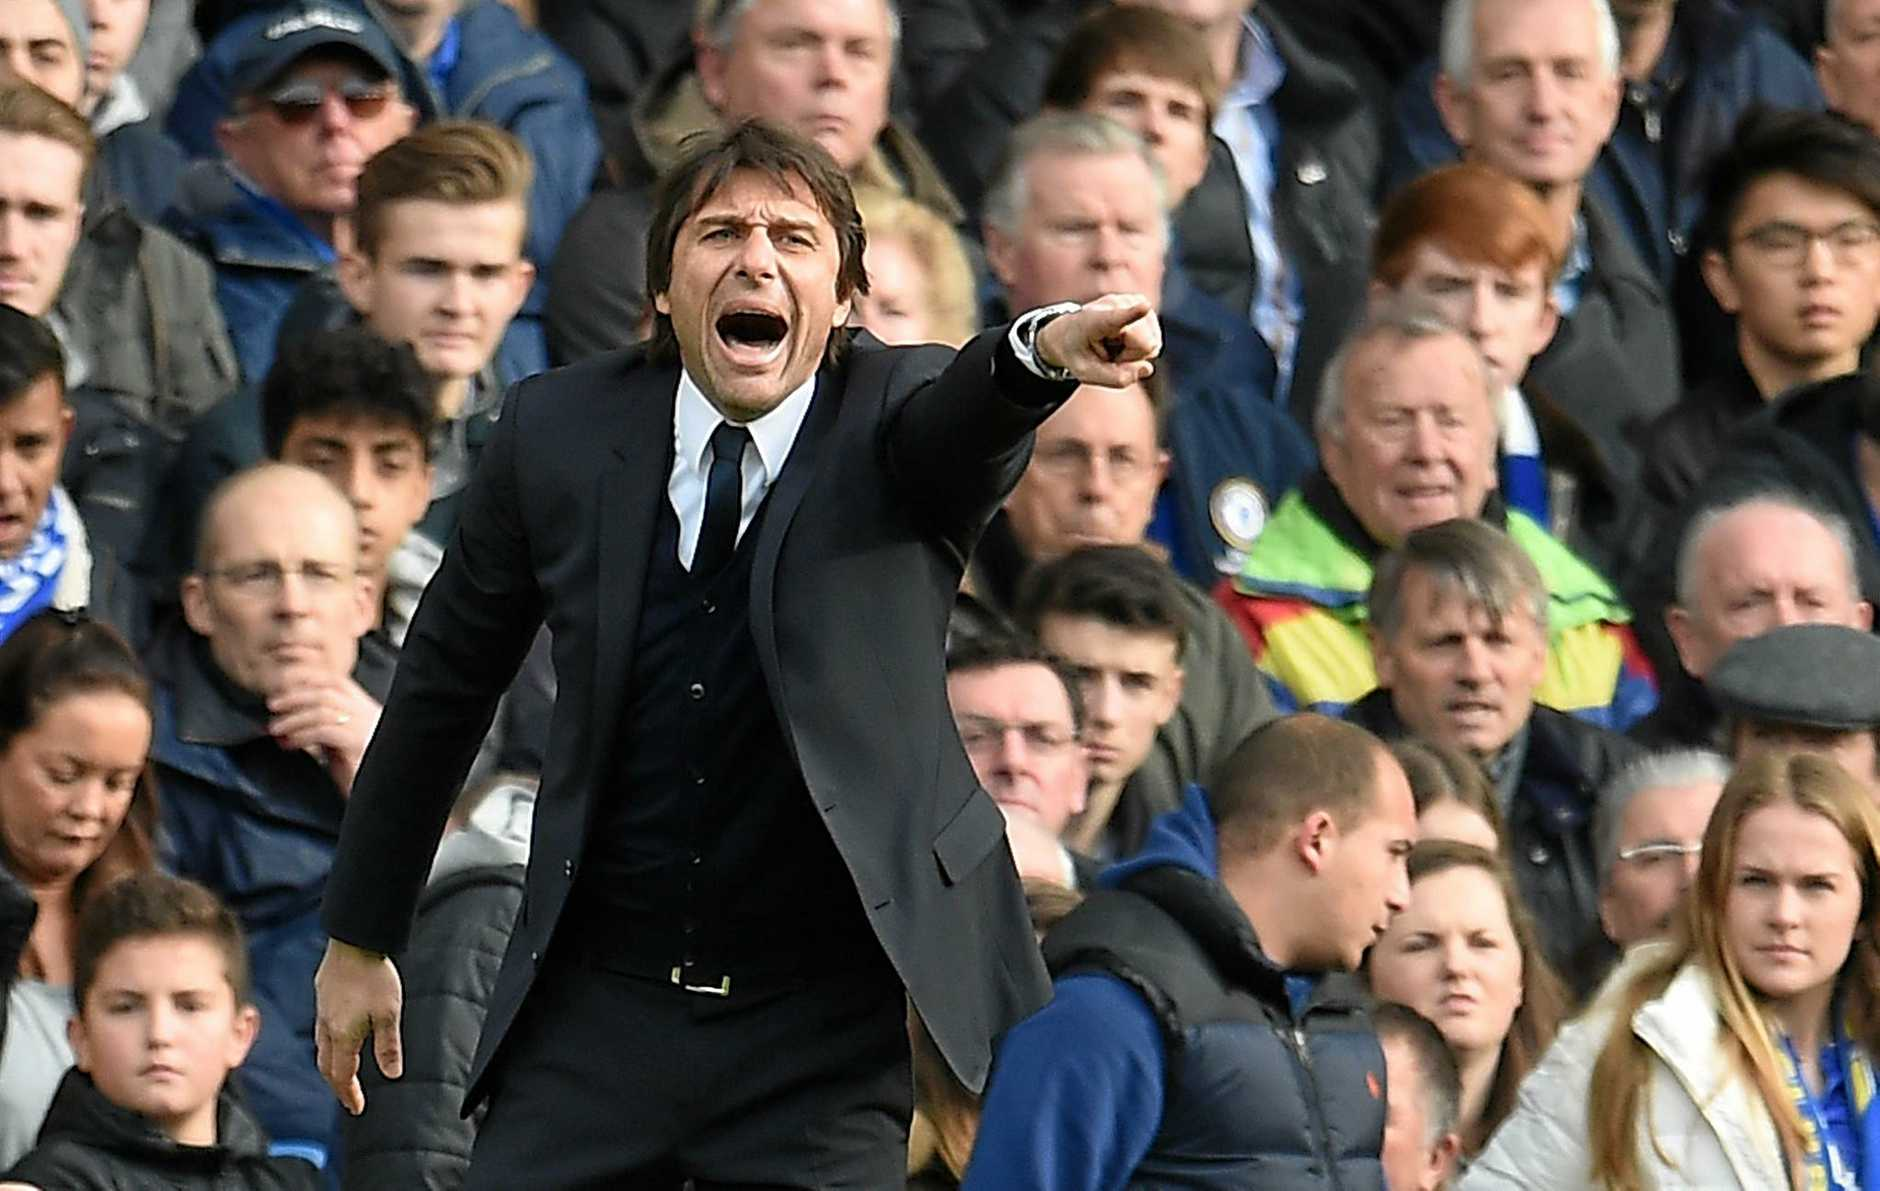 epa05770643 Chelsea's manager Antonio Conte during his teams match against Arsenal during a Premier League soccer match at Stamford Bridge in London, Britain, 04 February 2017.  EPA/ANDY RAIN EDITORIAL USE ONLY. No use with unauthorized audio, video, data, fixture lists, club/league logos or 'live' services. Online in-match use limited to 75 images, no video emulation. No use in betting, games or single club/league/player publications